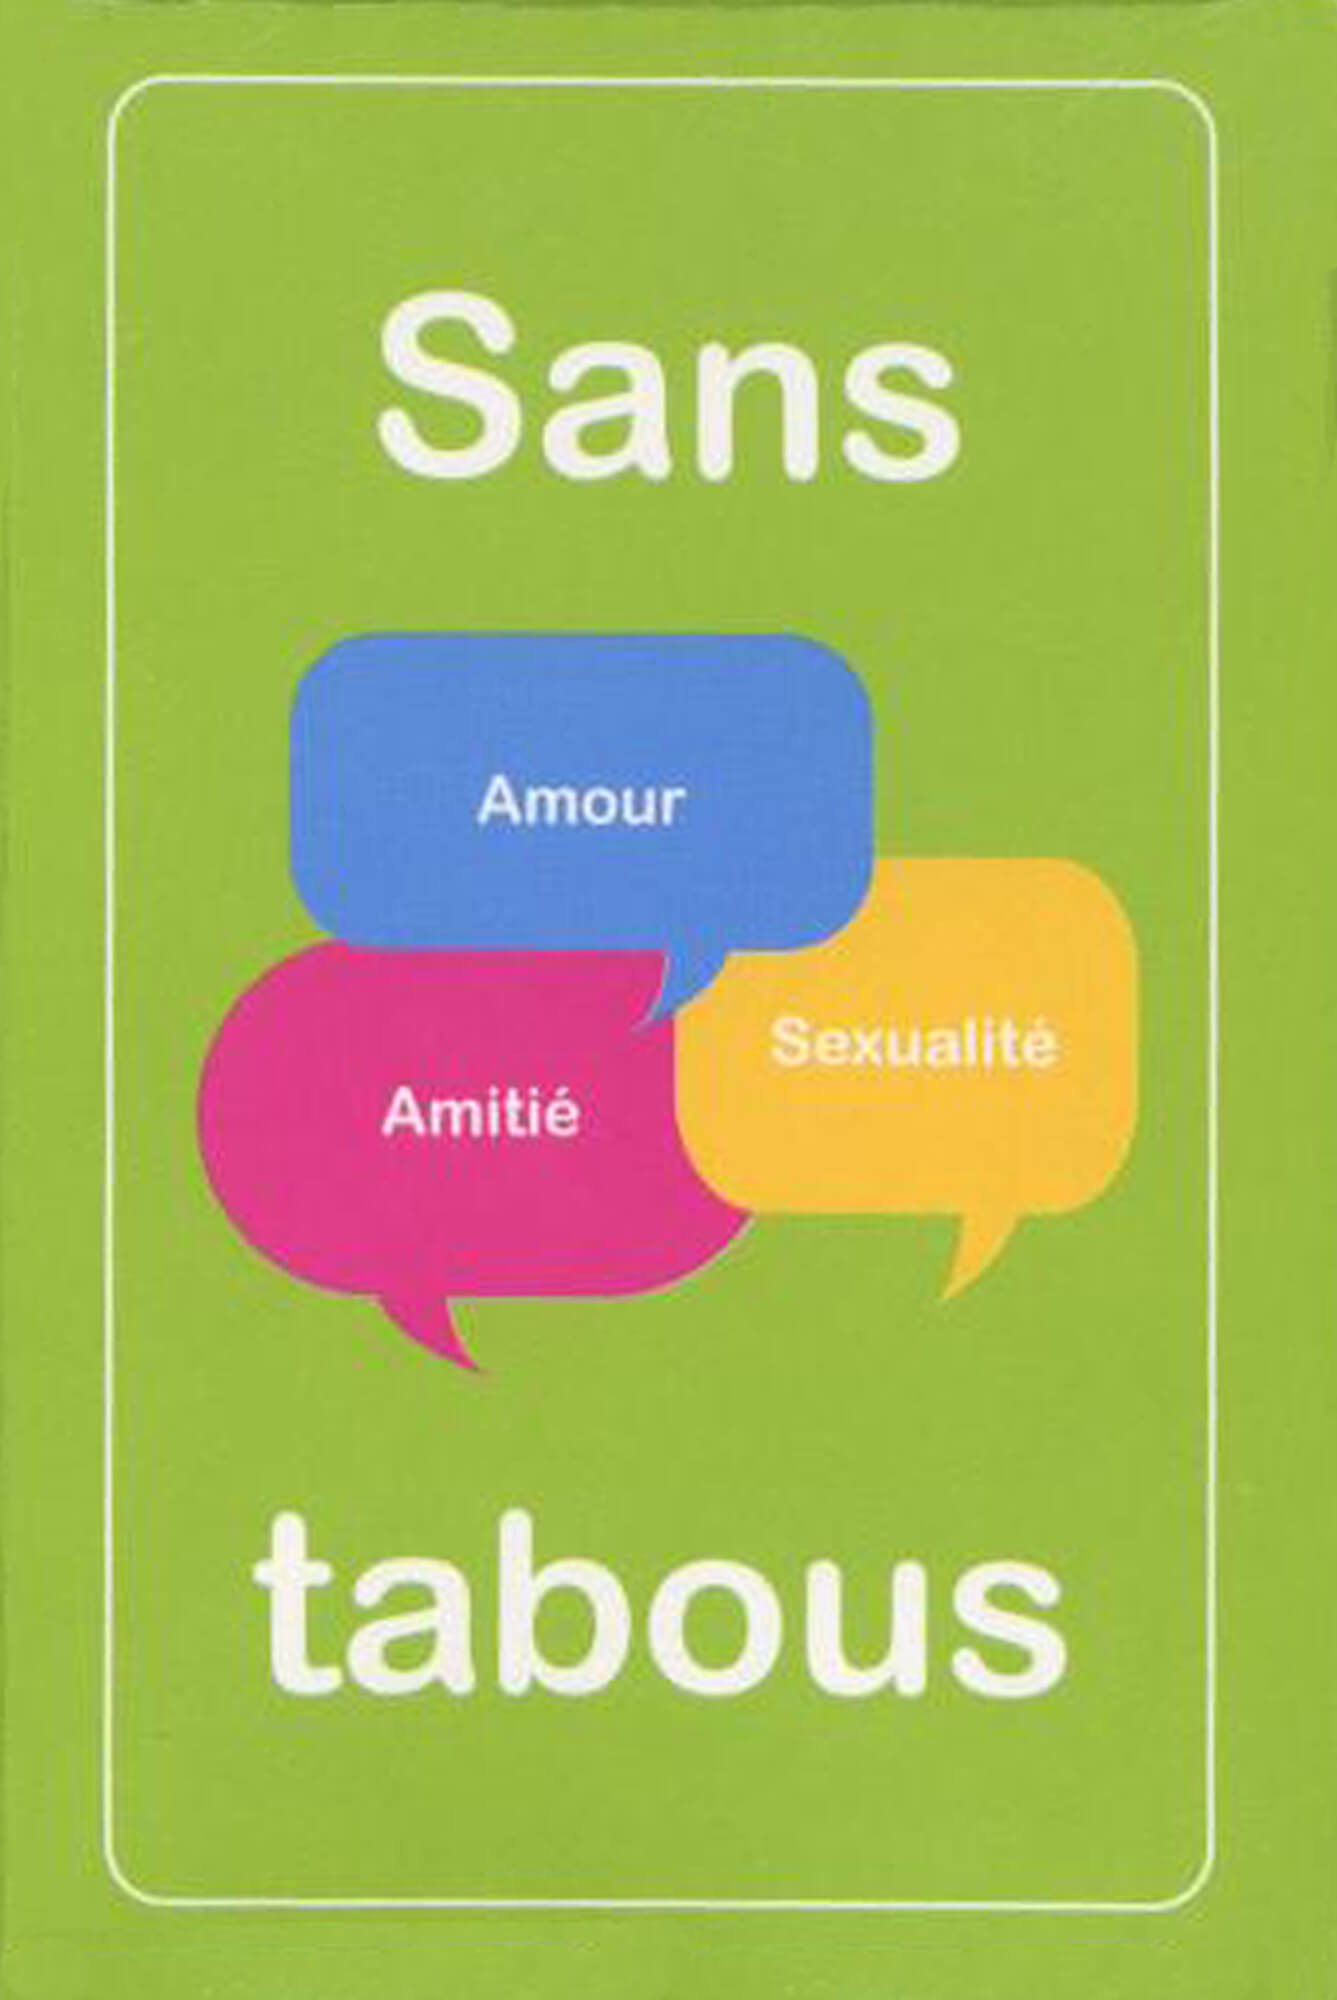 sans-tabou-outil-relationnel